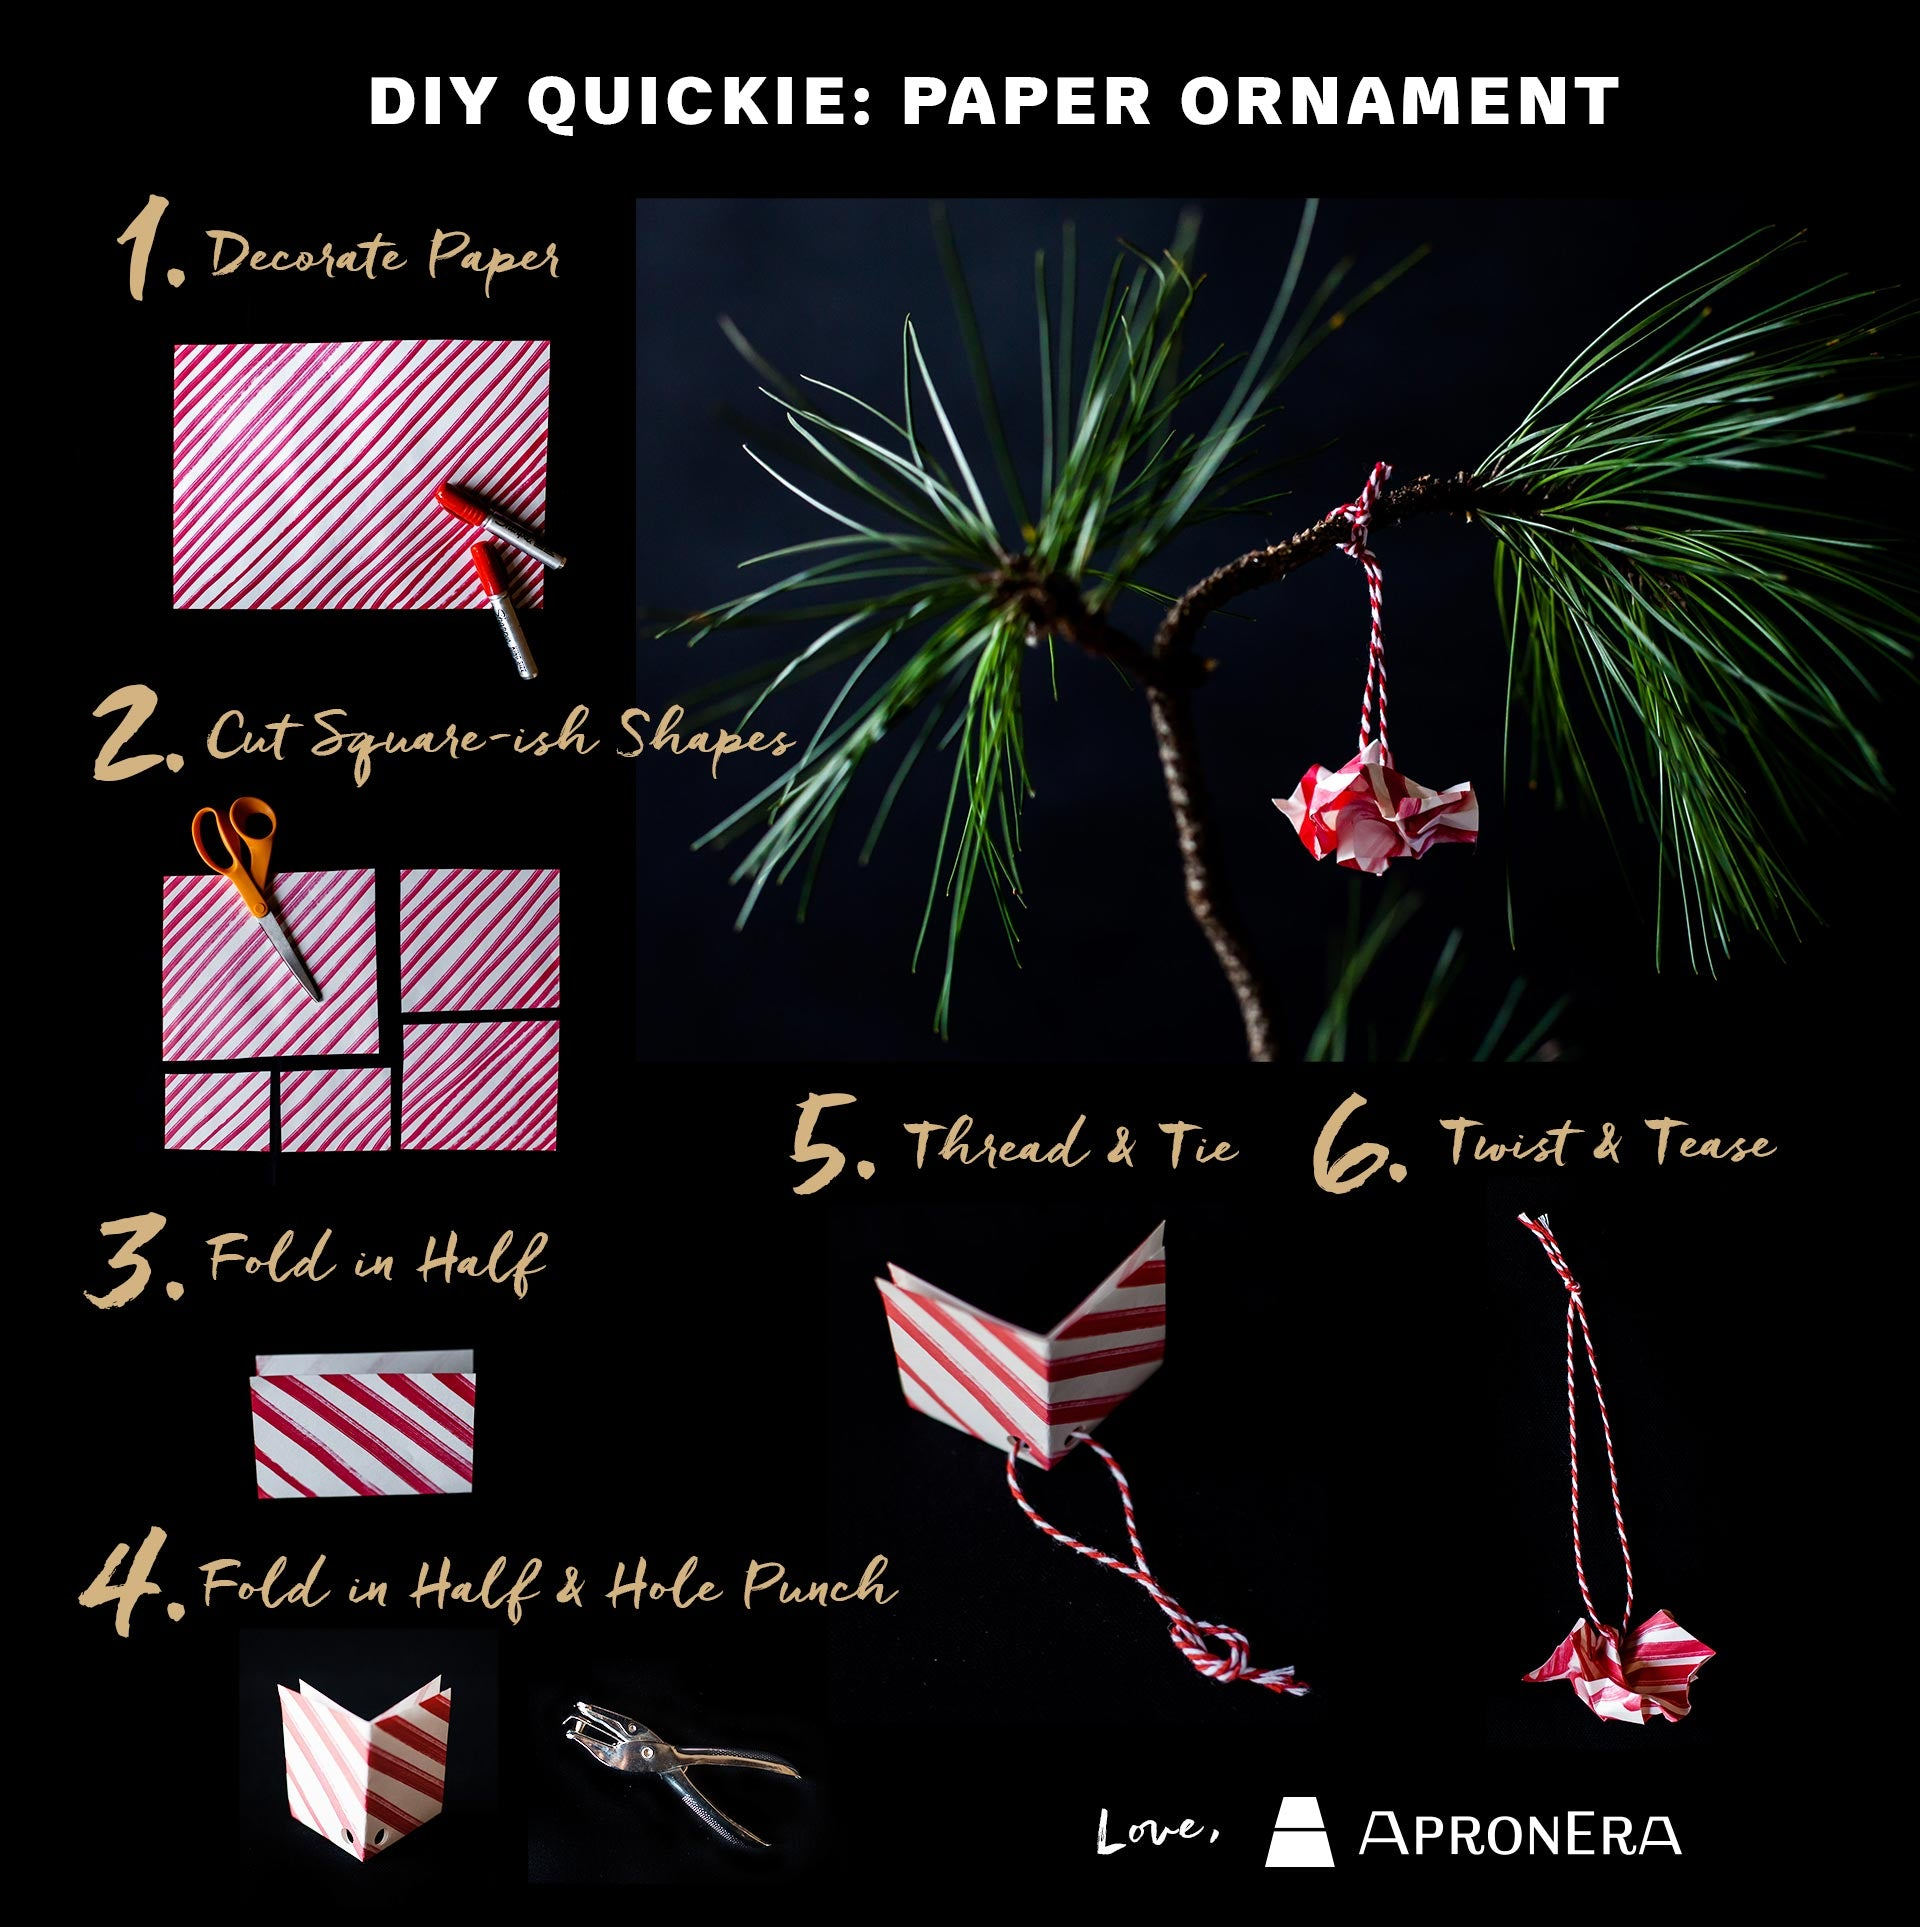 How to Make Quick Paper Ornaments-Holiday DIY